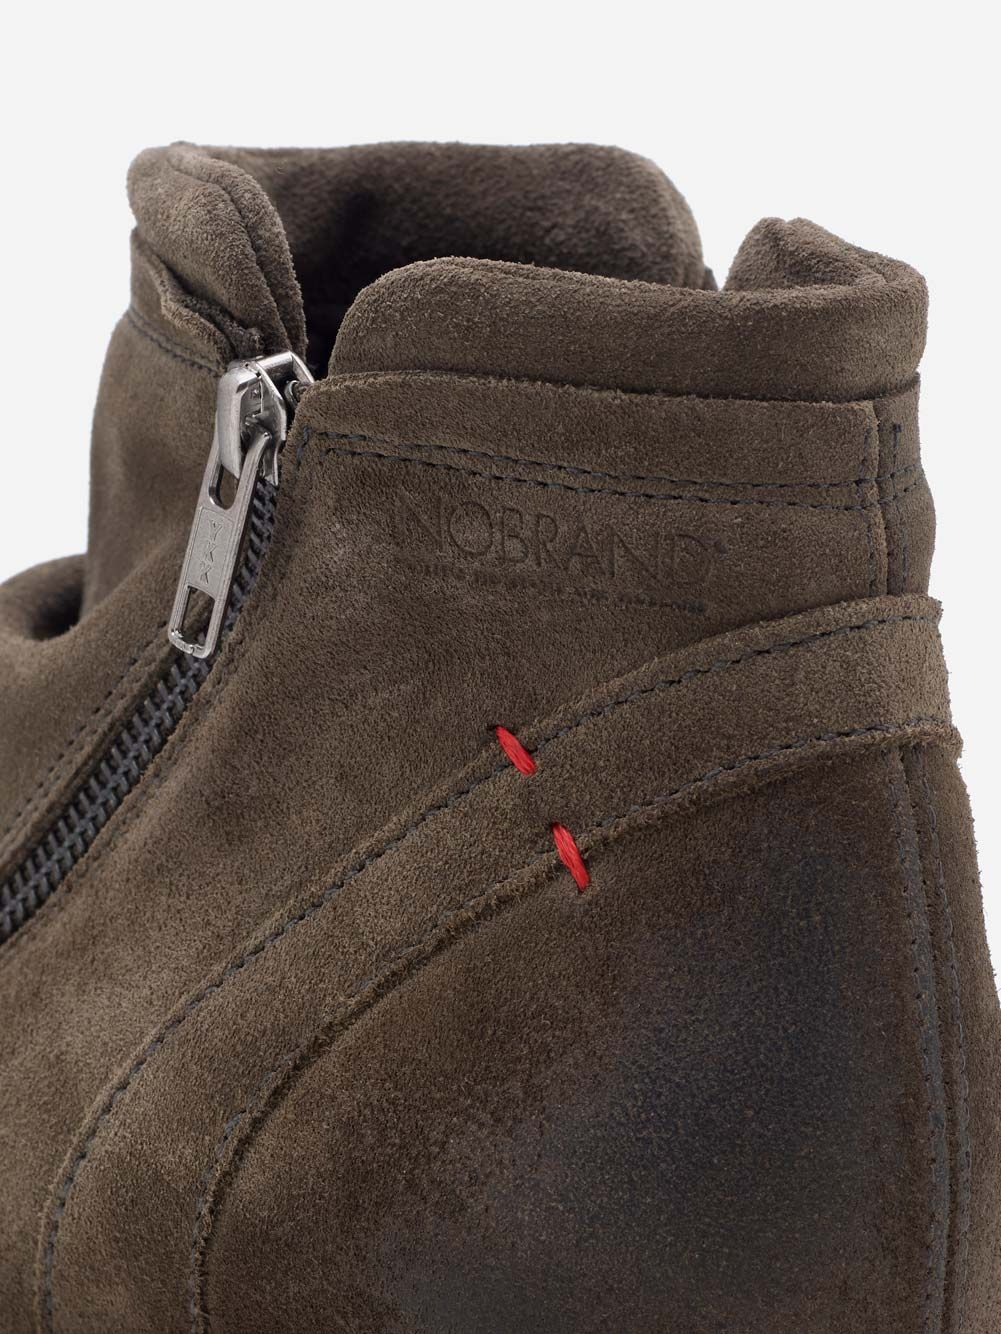 Hacker 5 Taupe | Nobrand